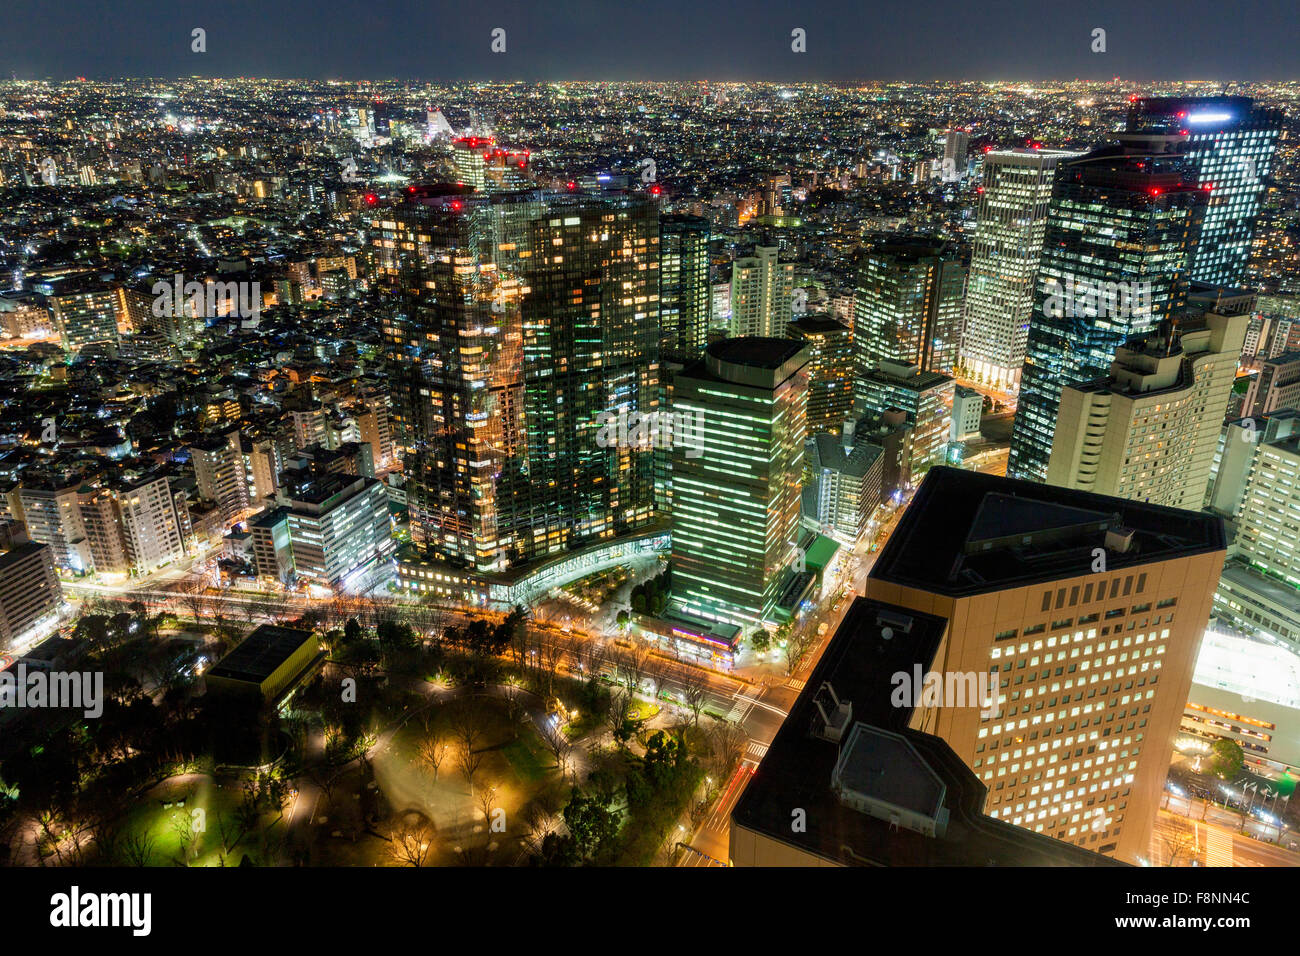 A panoramic city scape of Tokyo, Japan - Stock Image